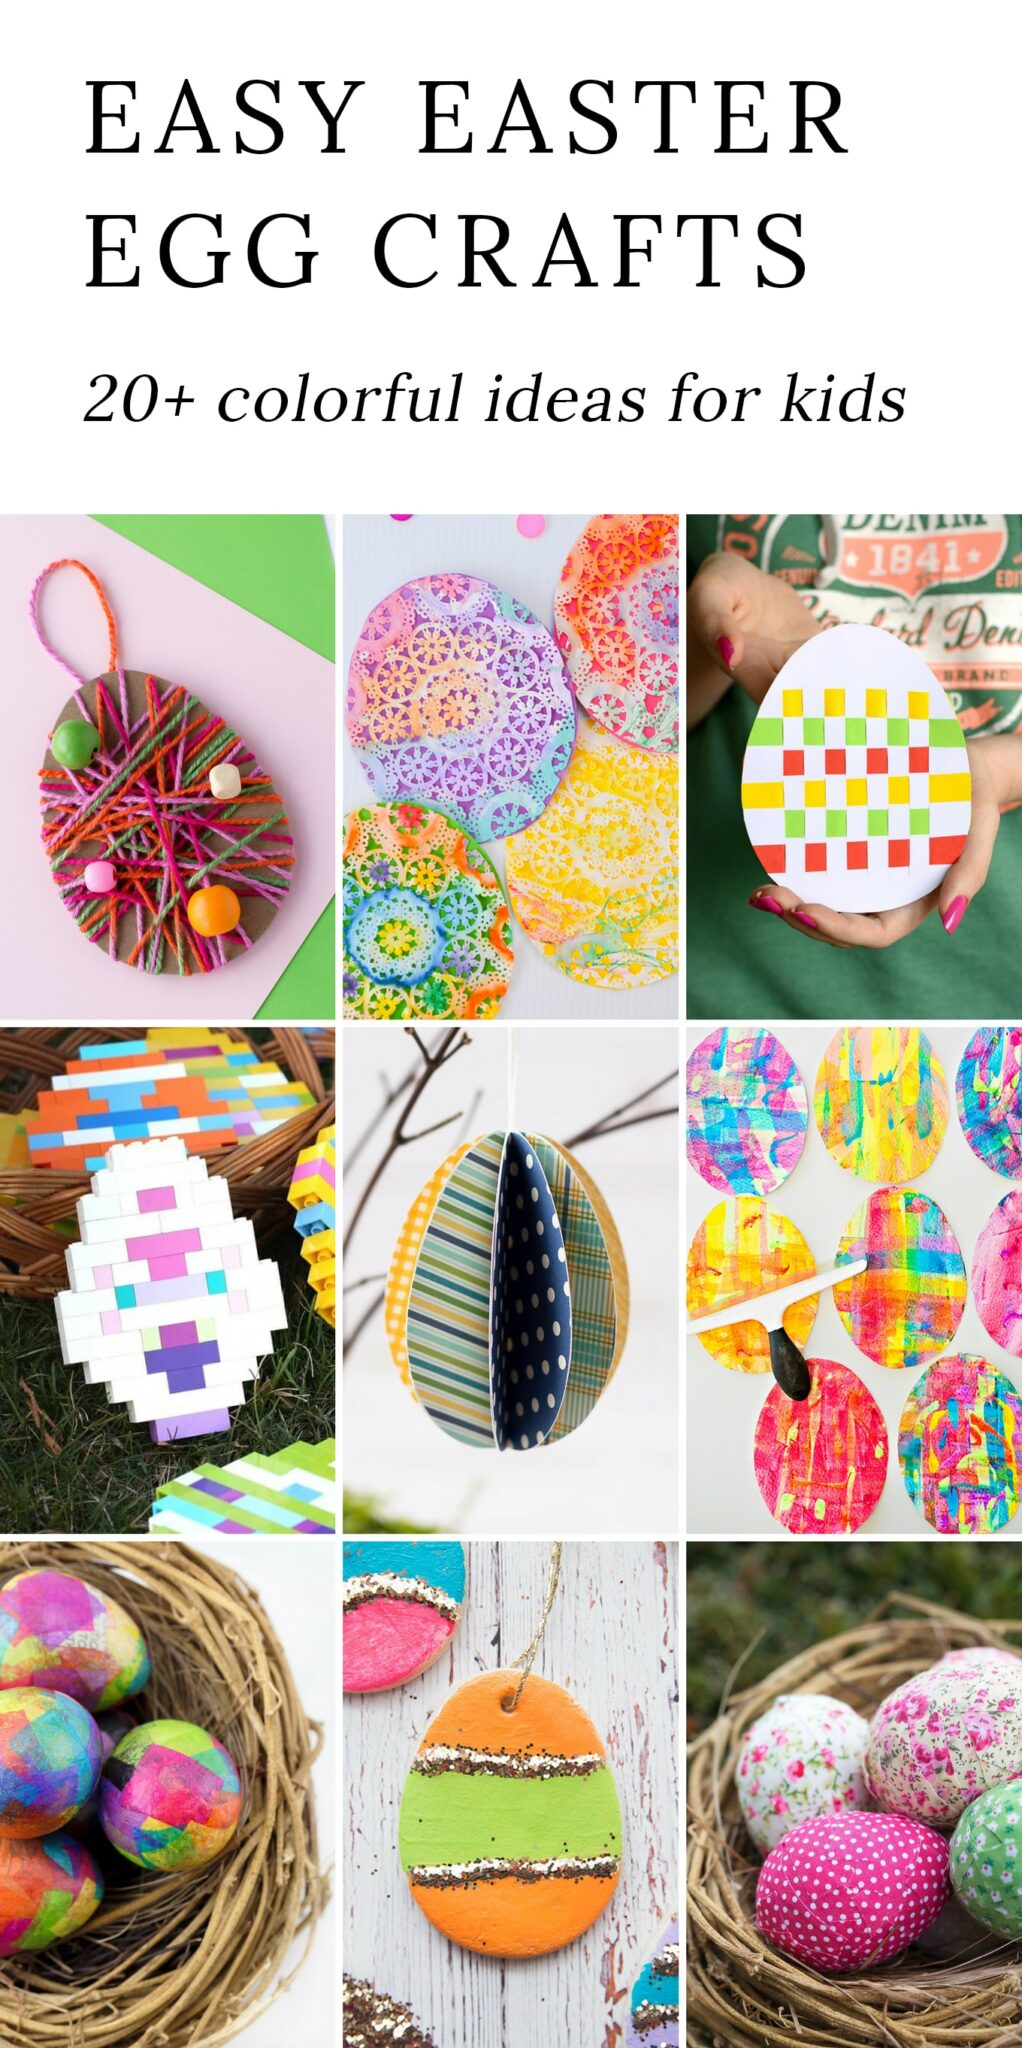 Art Decorating And Crafting The Most Easy And Entertaining Egg Crafts For Kids